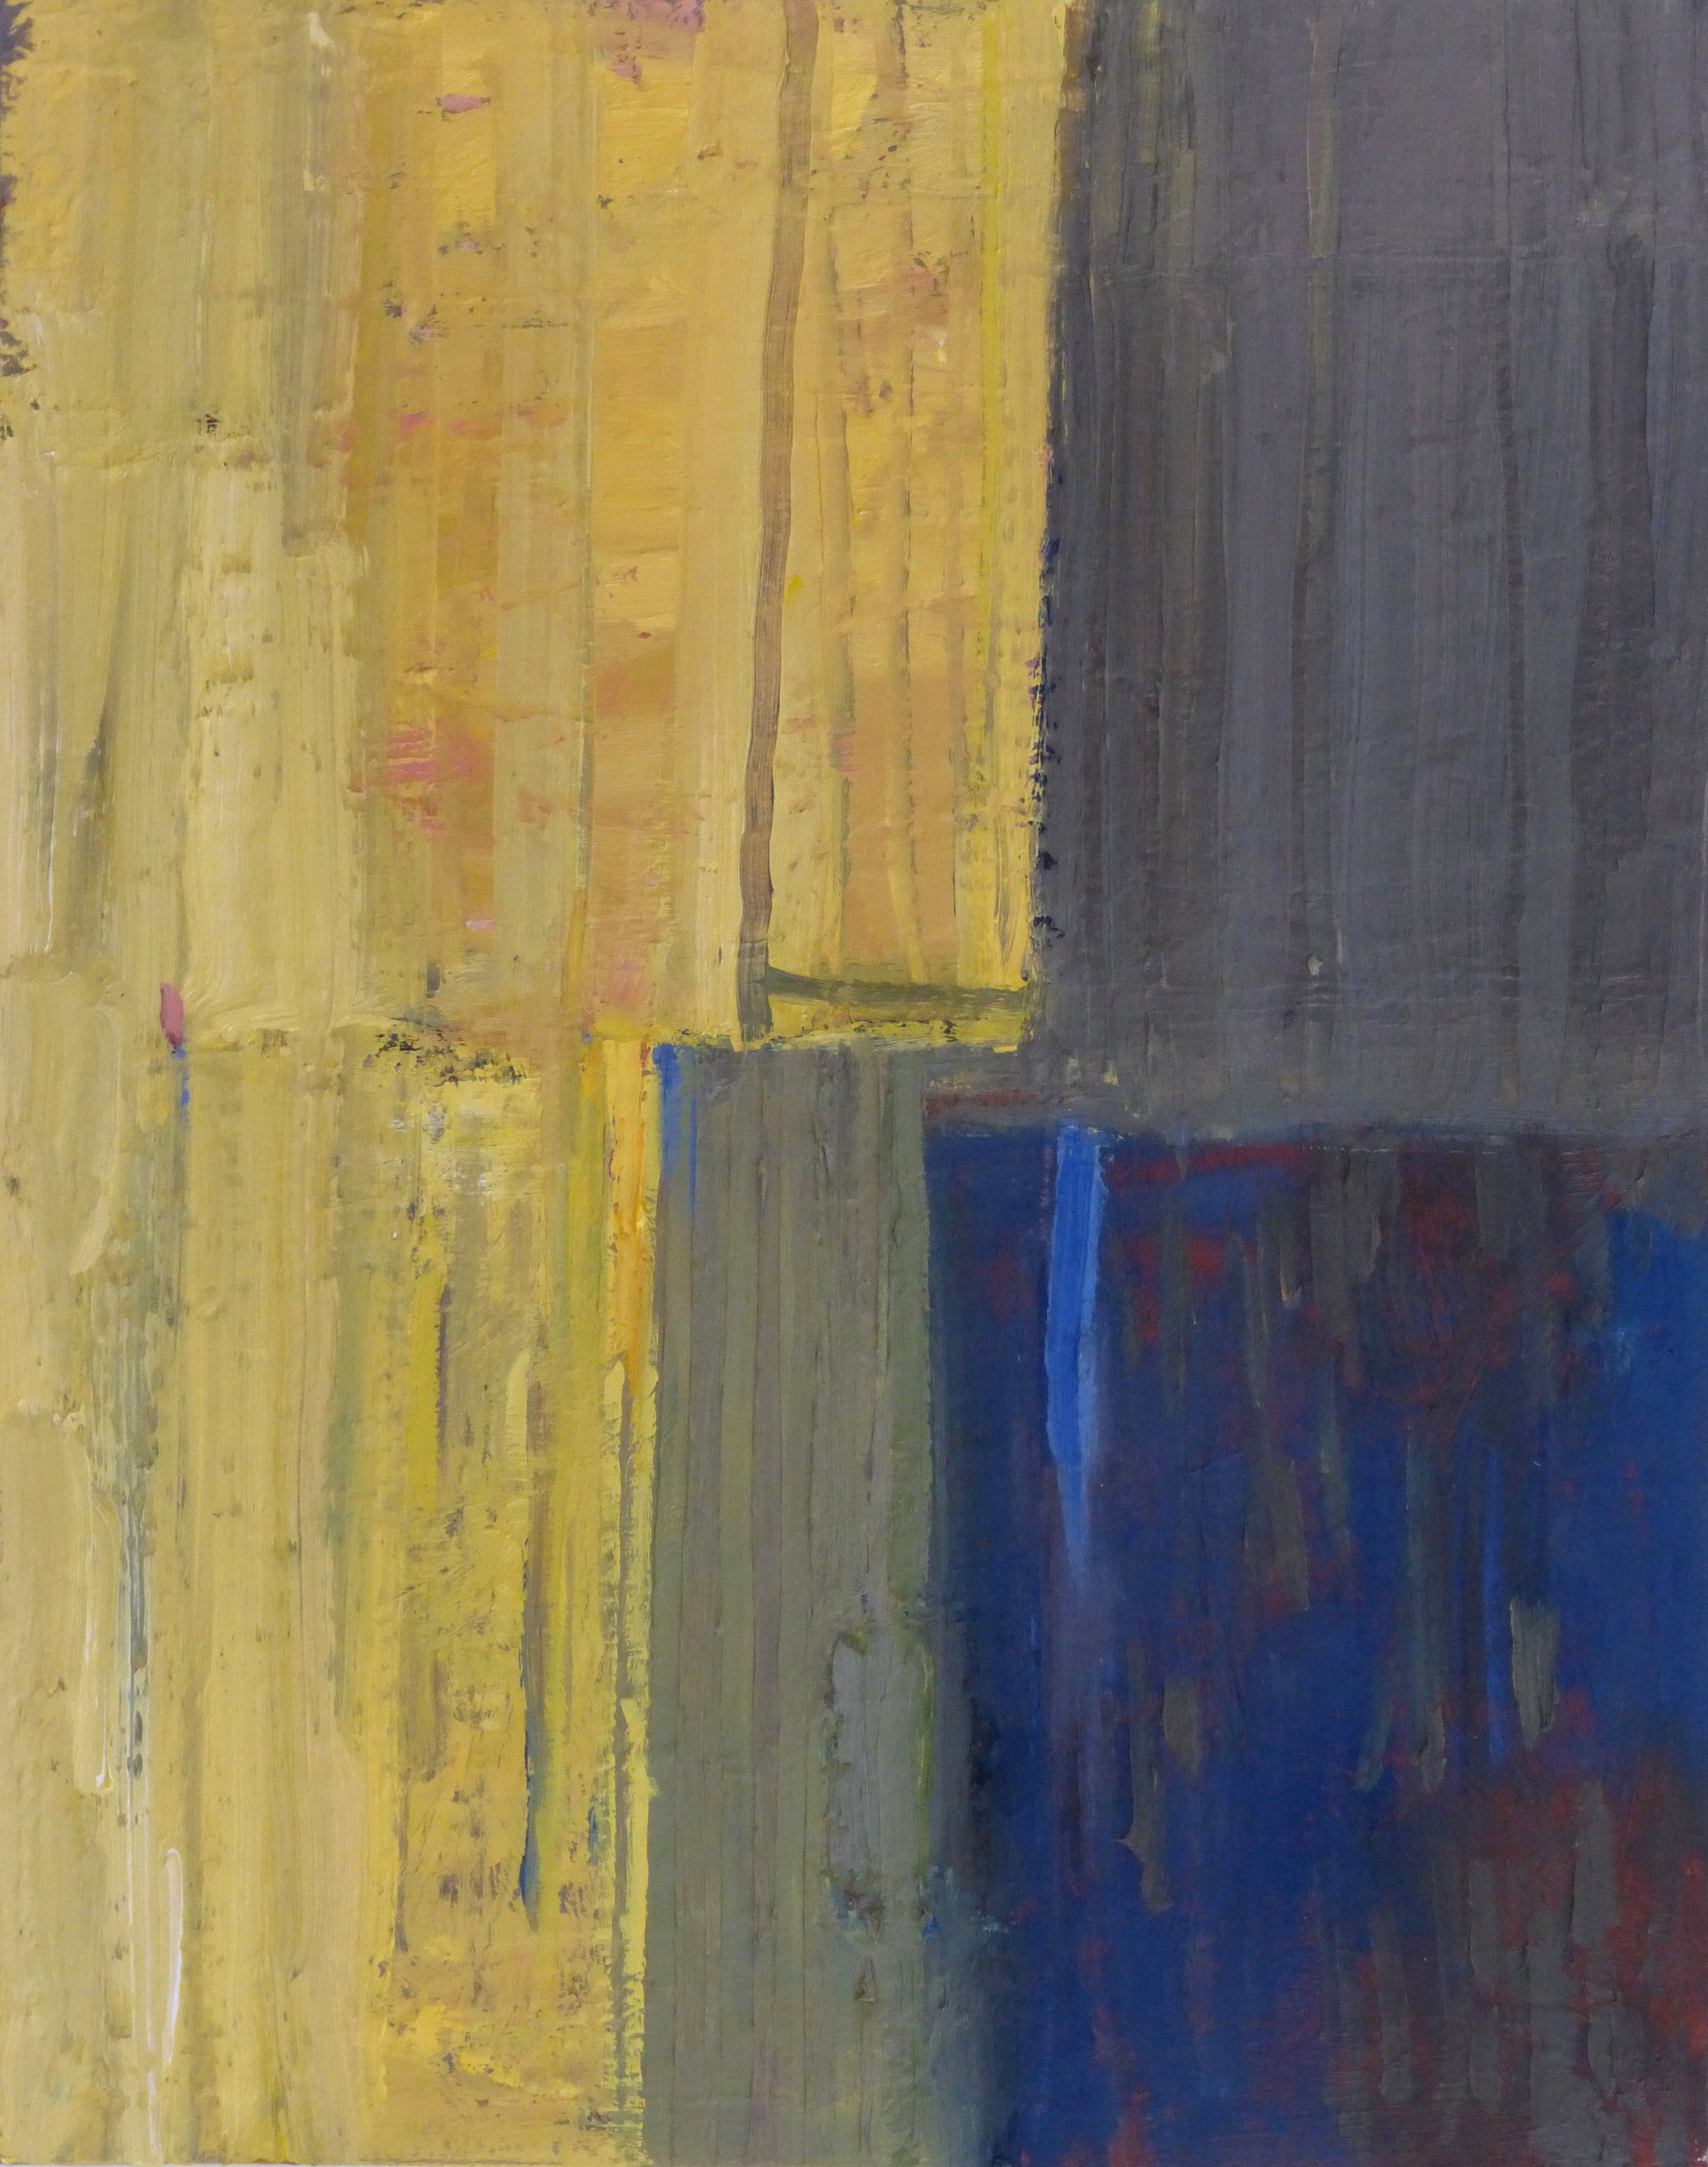 Artist: Maria Kuipers  Title: Yellow Verticals  Size: 50 x 40 cm  Medium: Oil on canvas  Price: £1190